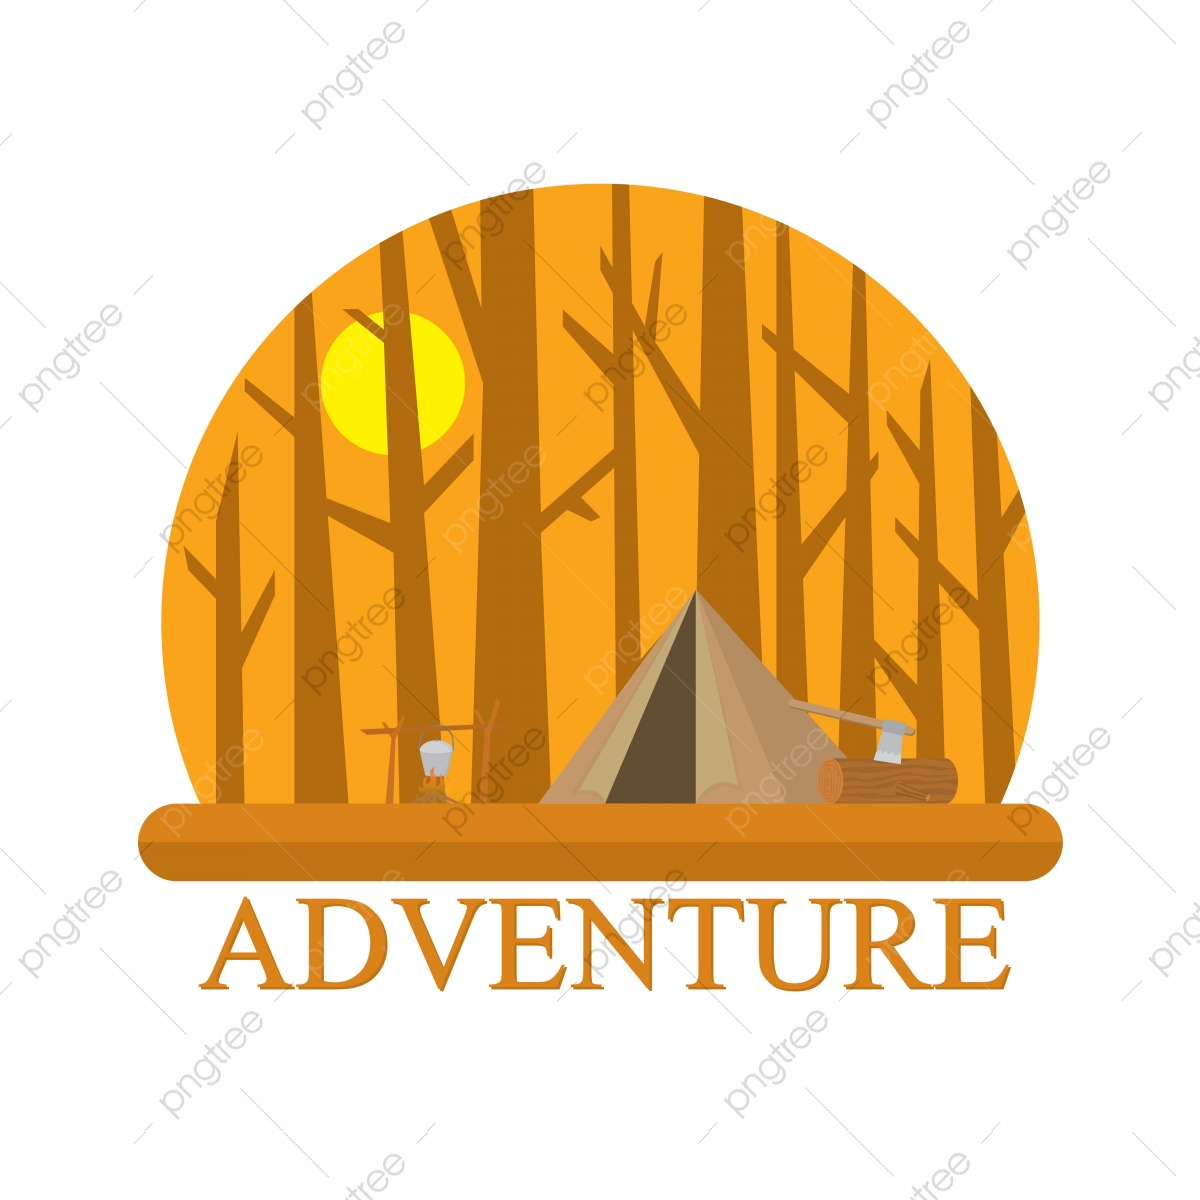 Free Camping Supplies Cliparts, Download Free Clip Art, Free Clip Art on  Clipart Library